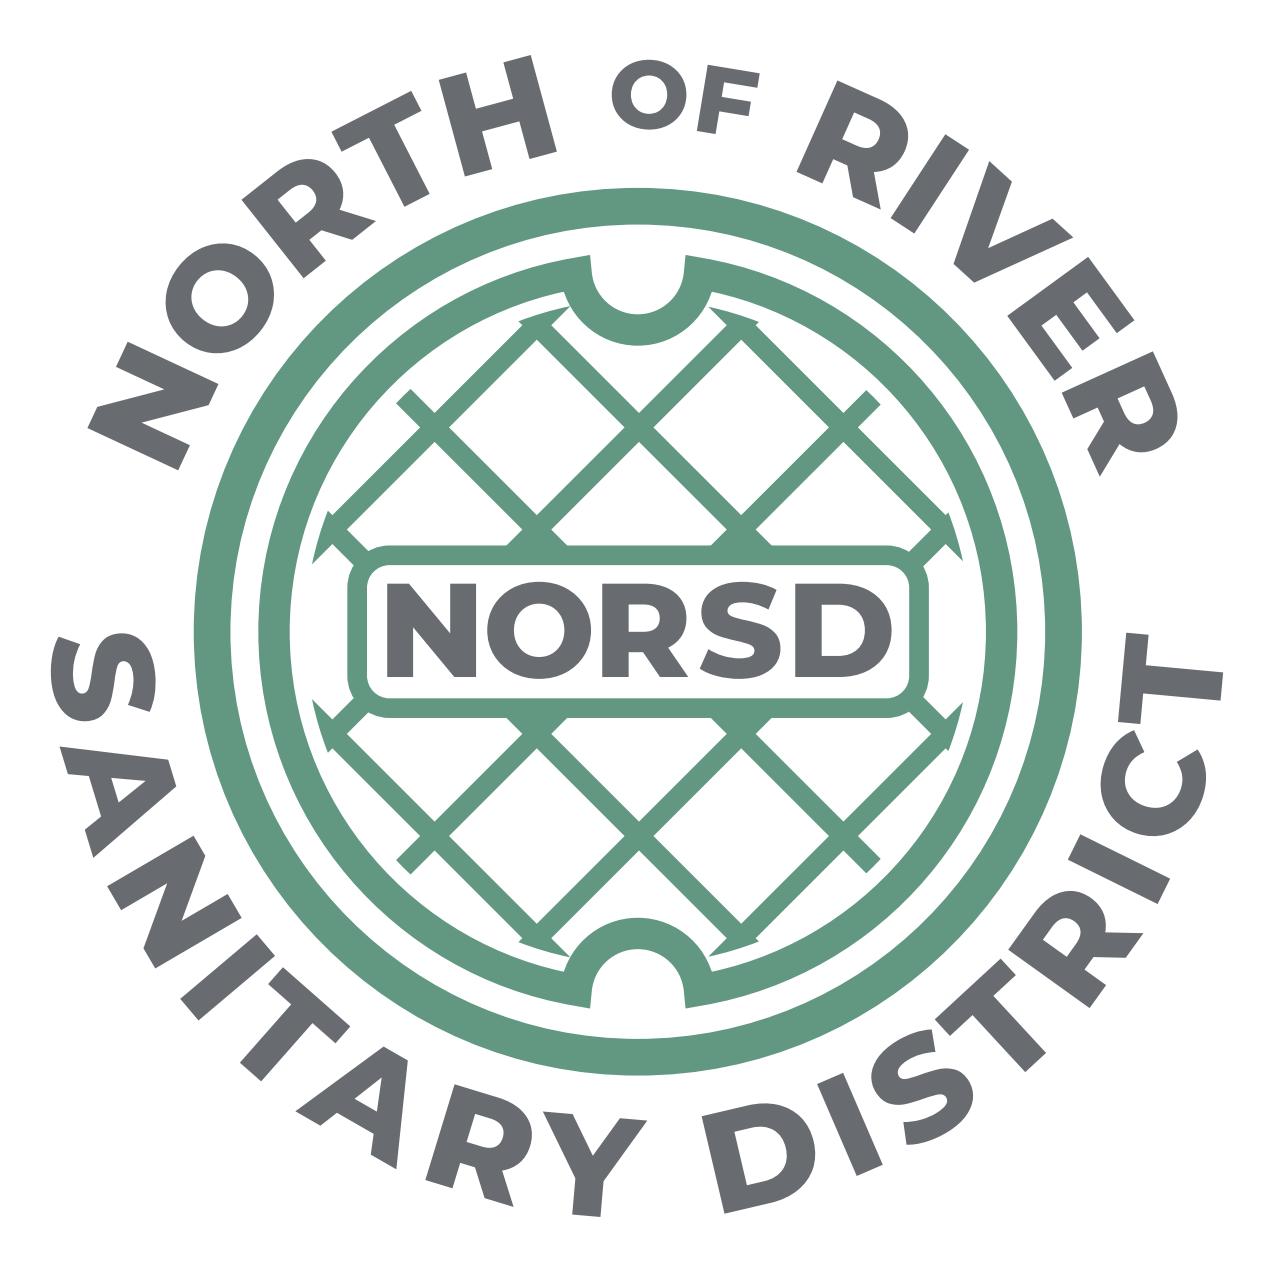 North of River Sanitary District